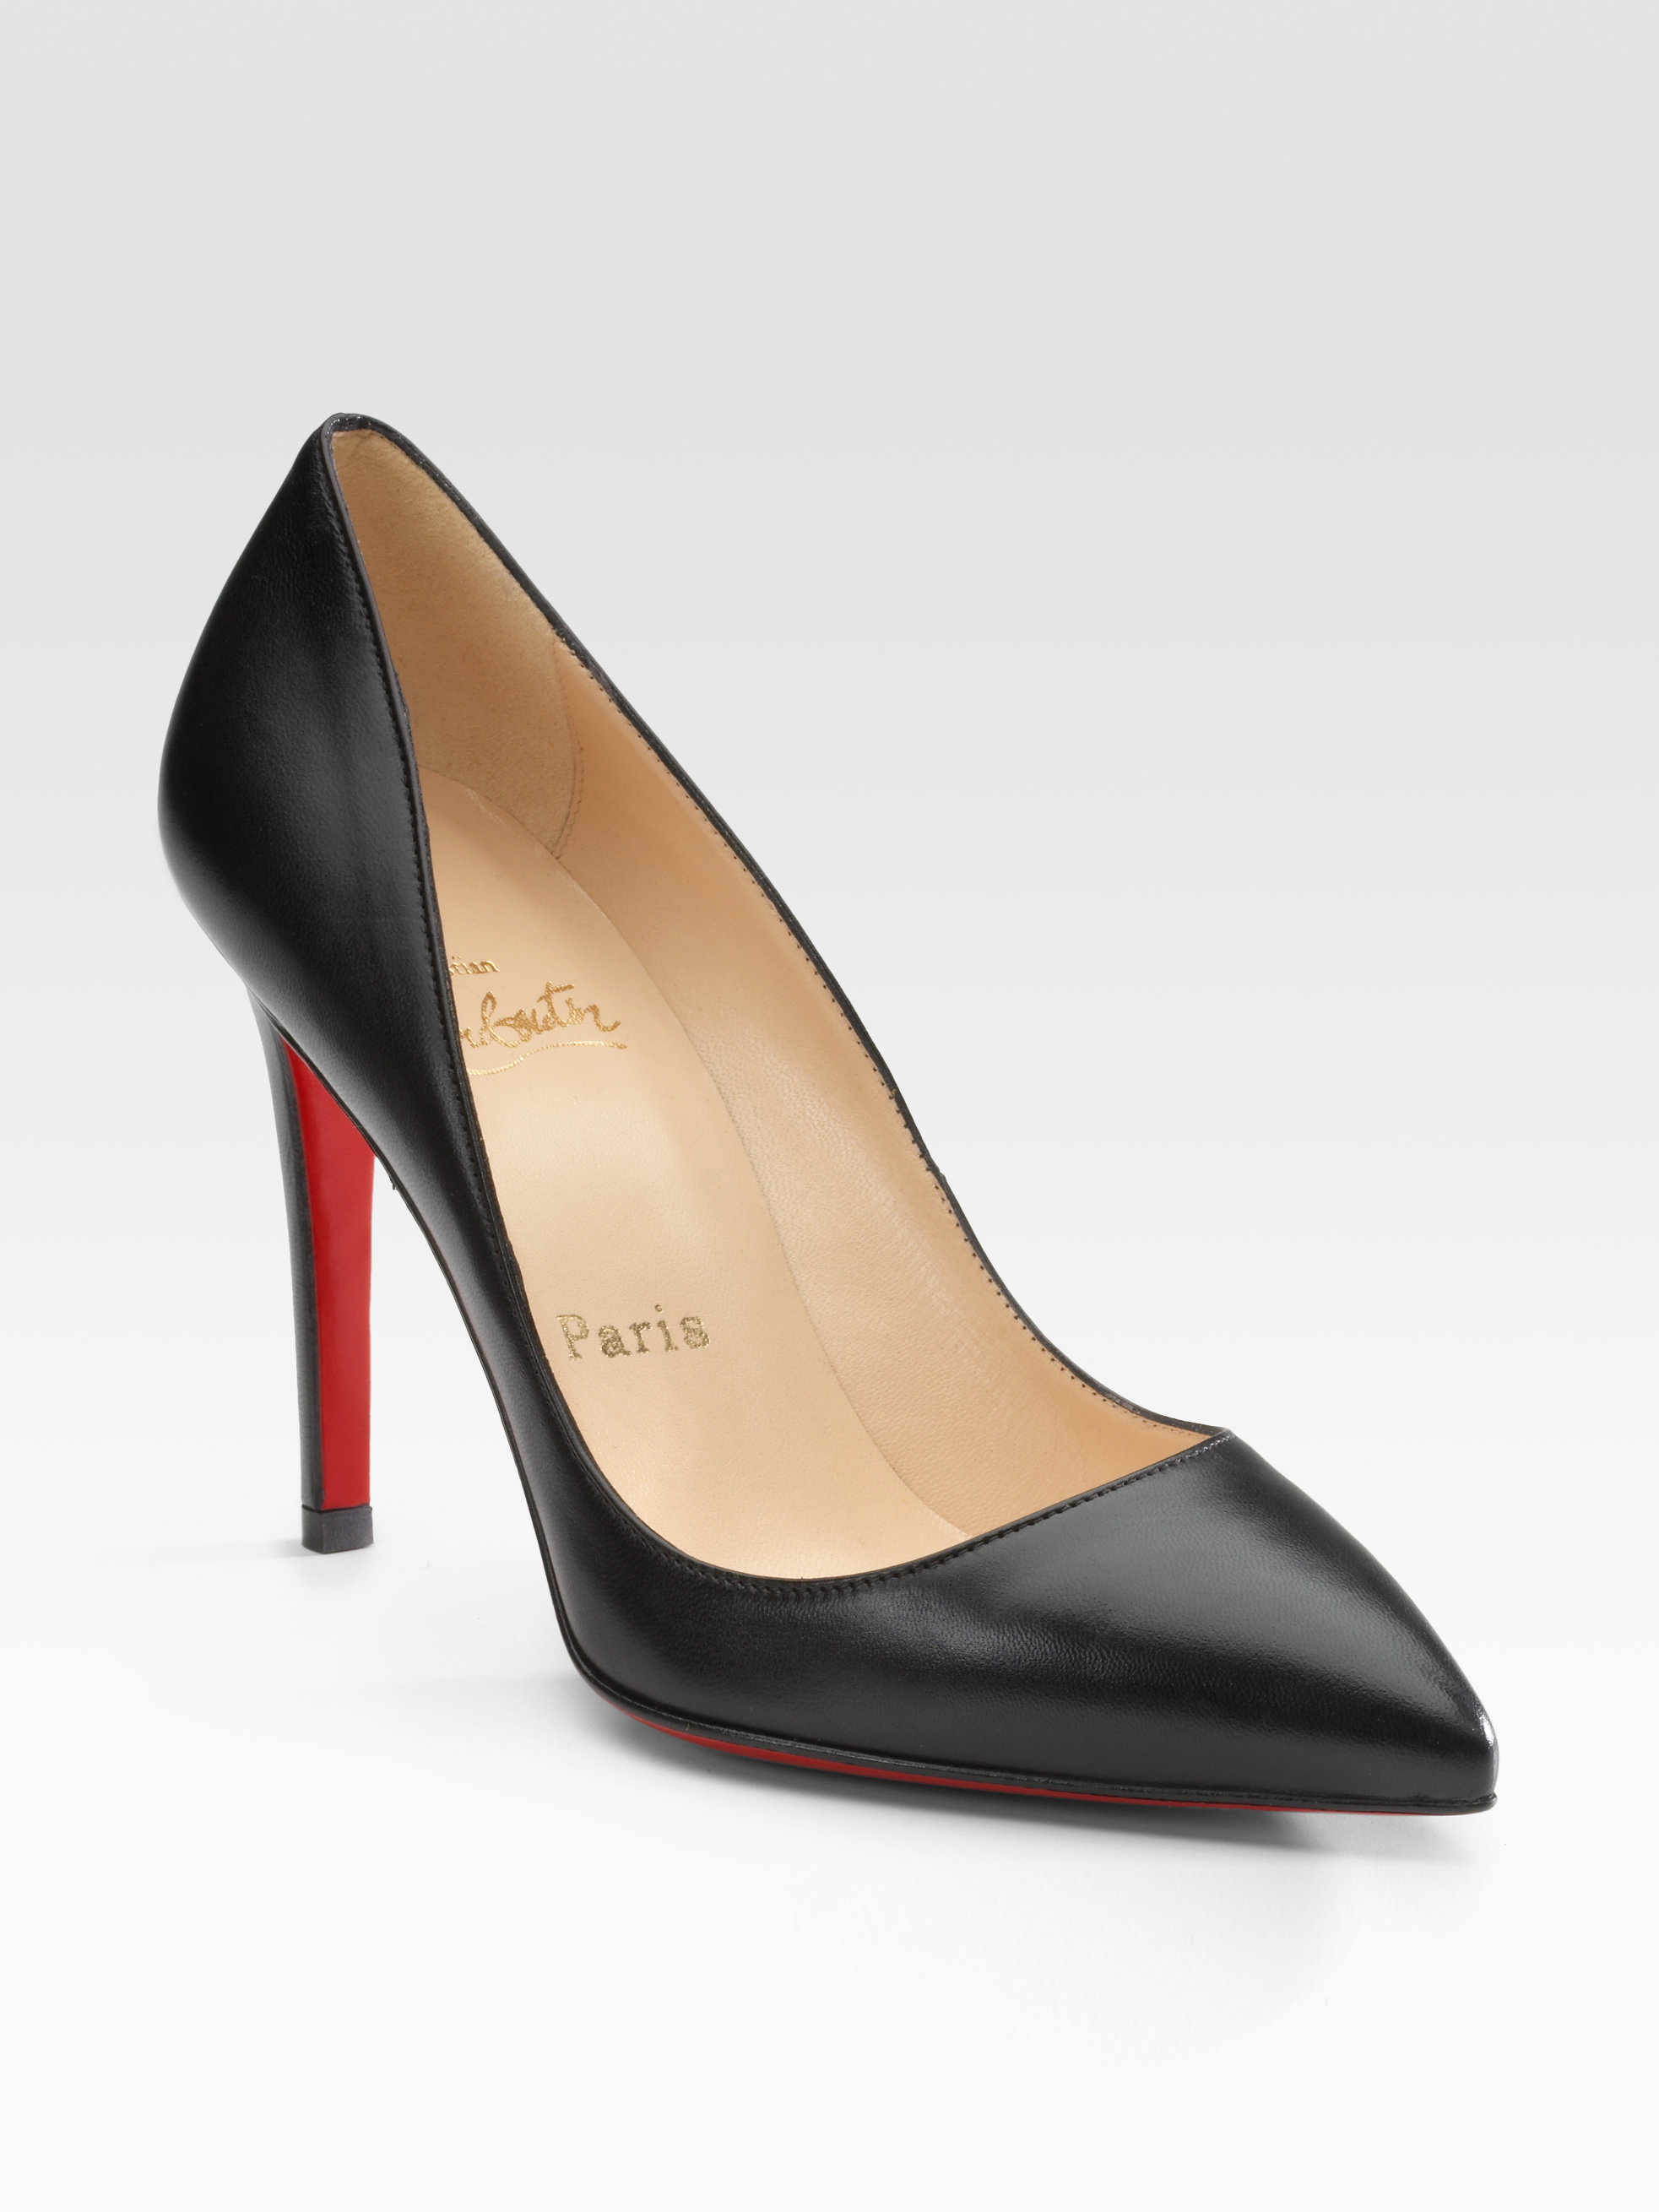 d12aadfb69c Gallery. Previously sold at  Saks Fifth Avenue · Women s Christian  Louboutin Pigalle Women s Gold Glitter Shoes ...